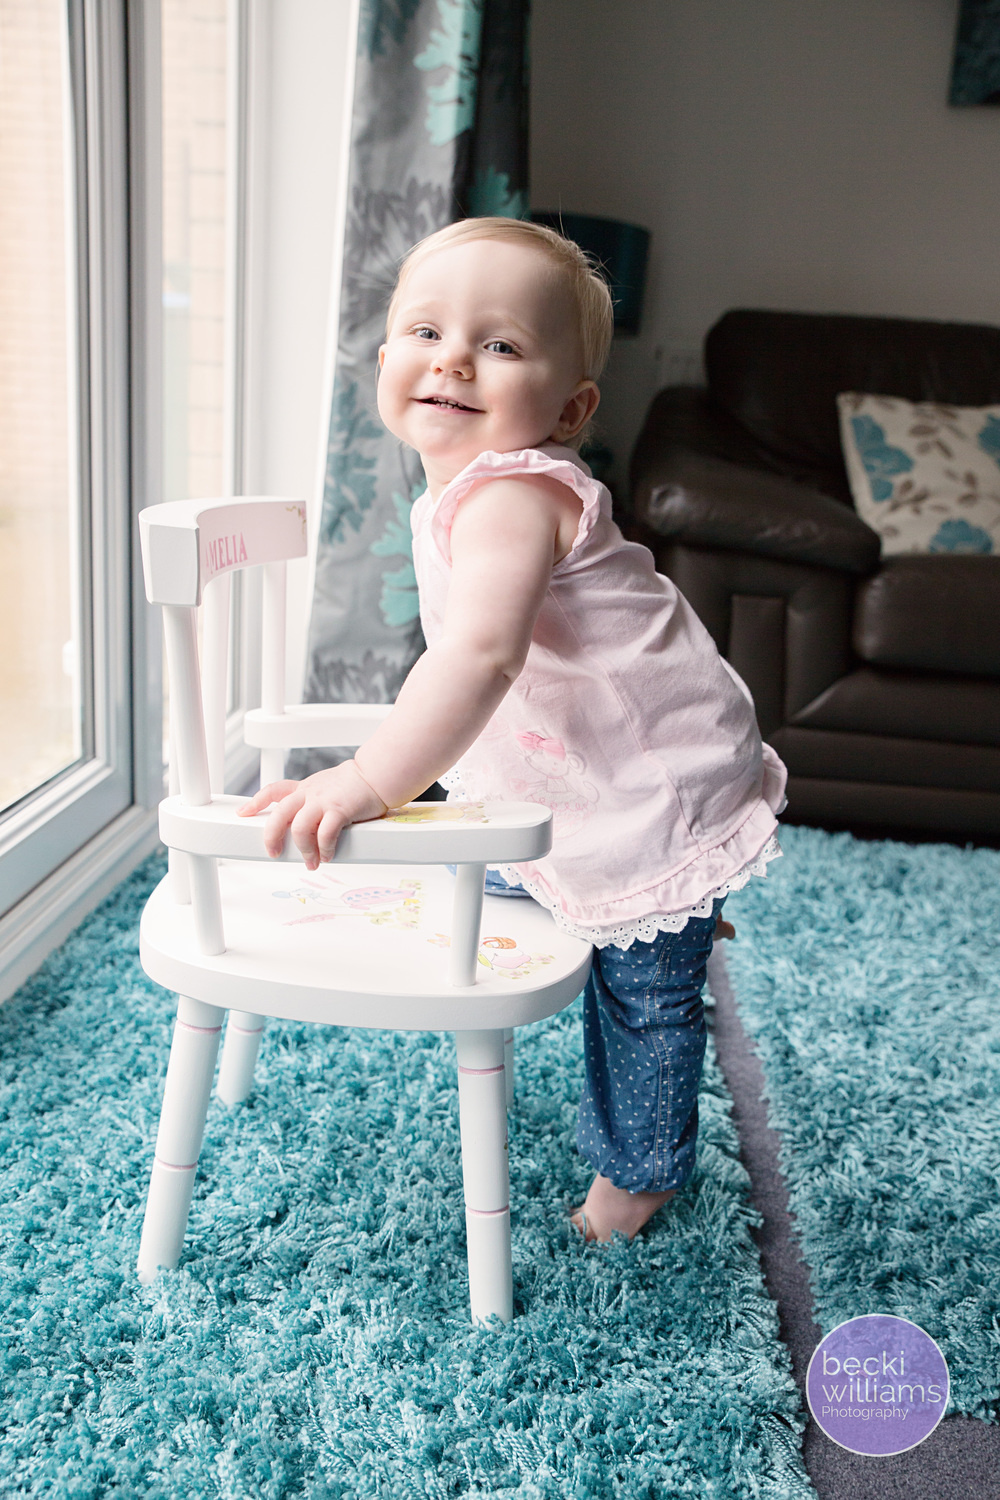 Baby-photography-hemel-hempstead-chair.jpg